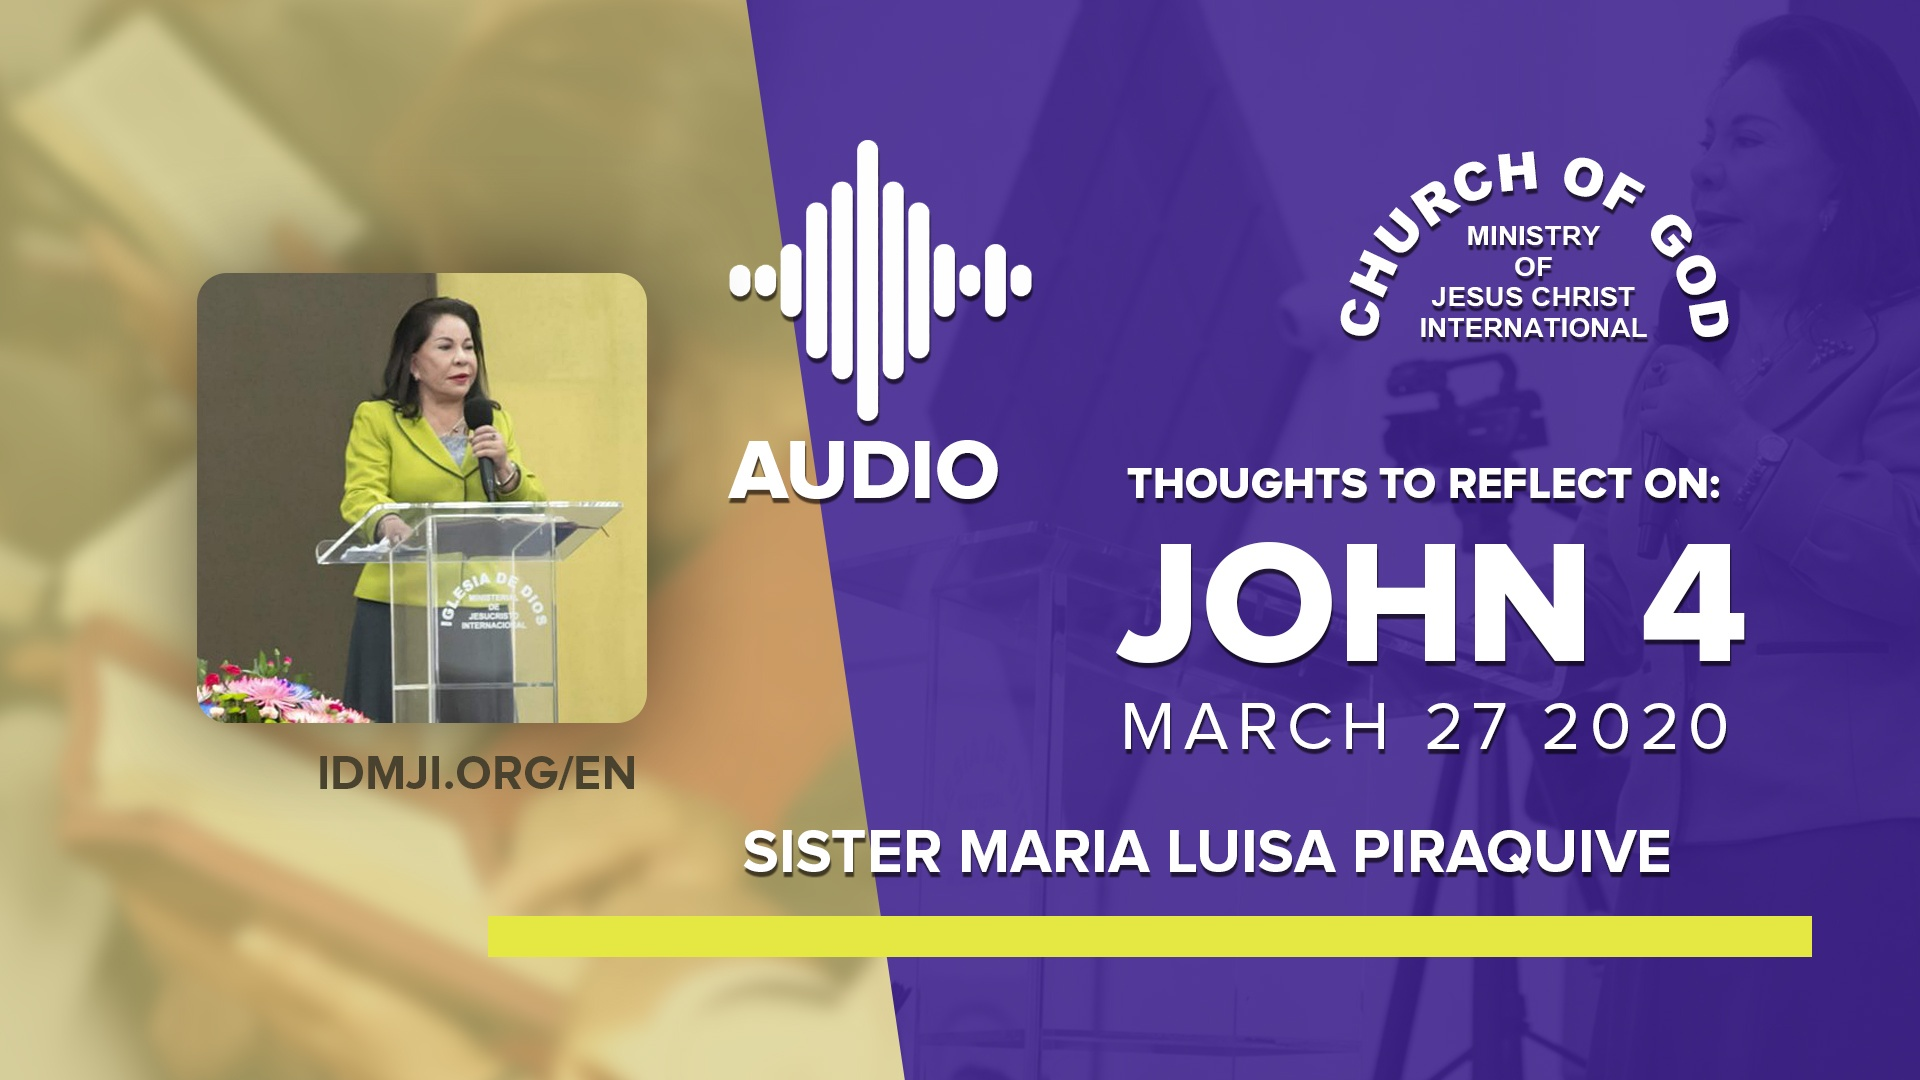 Thoughts to Reflect on: John 4 by Sister Maria Luisa Piraquive